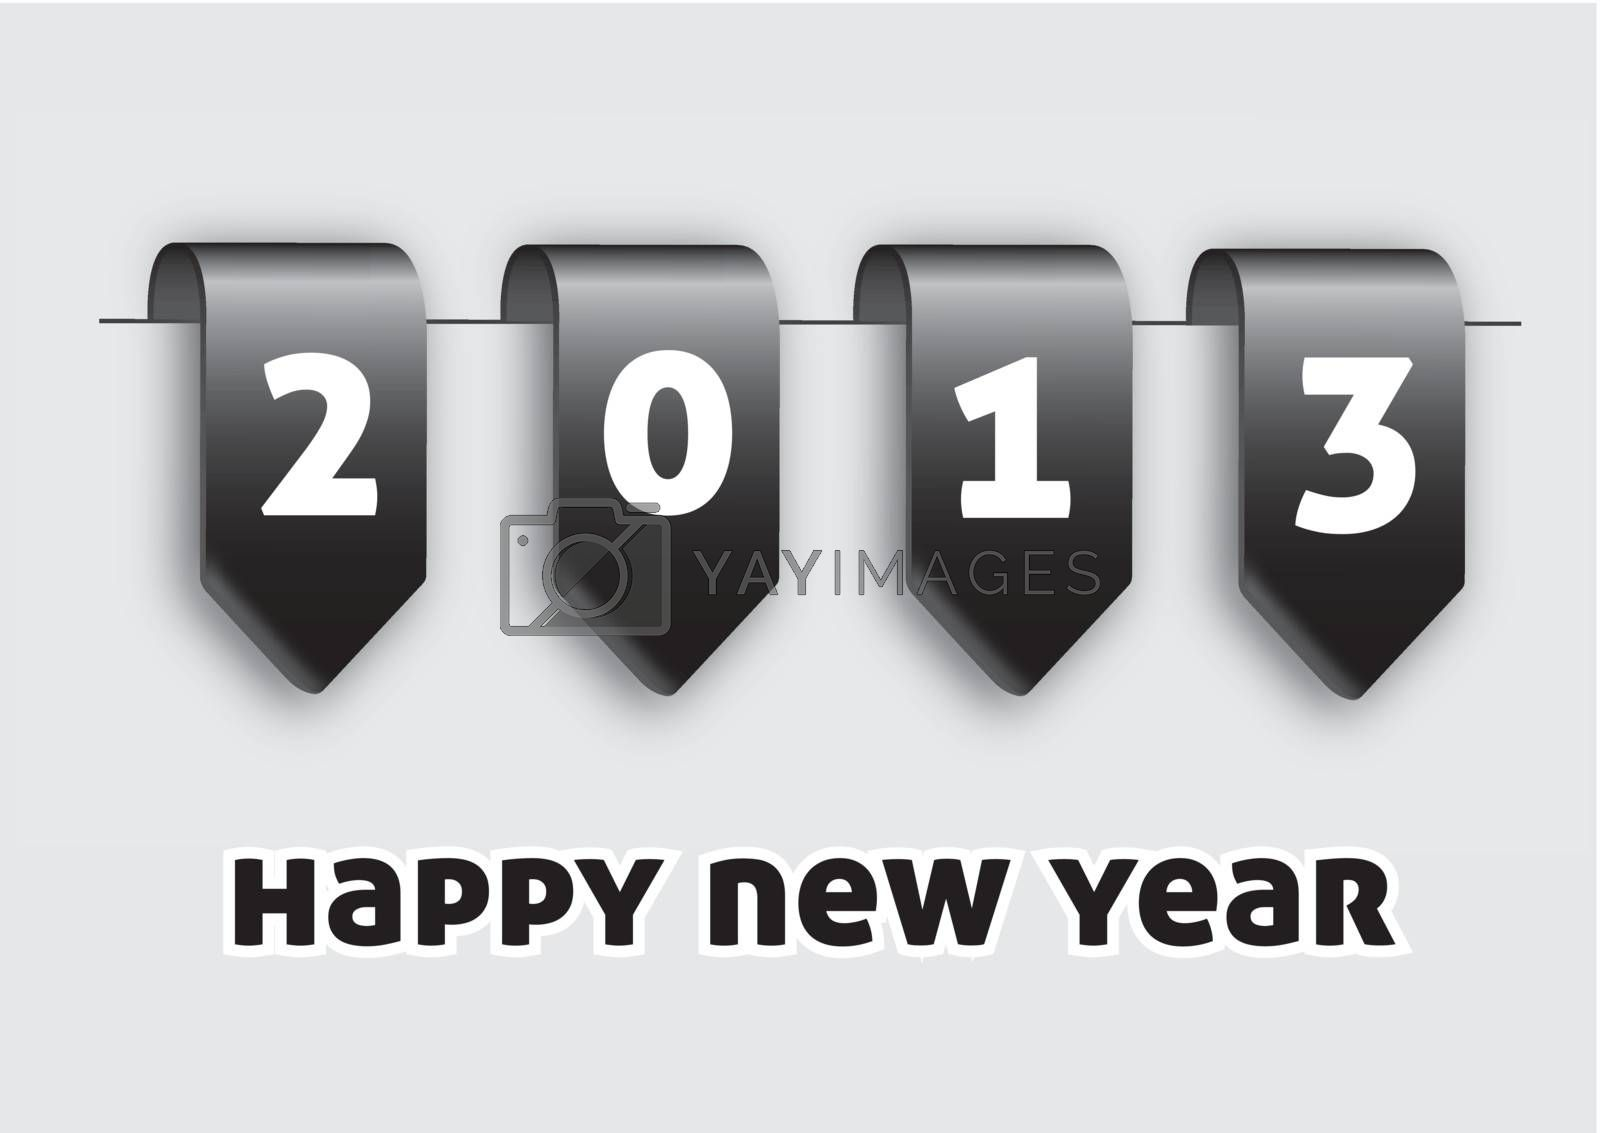 Labels happy new year over white background